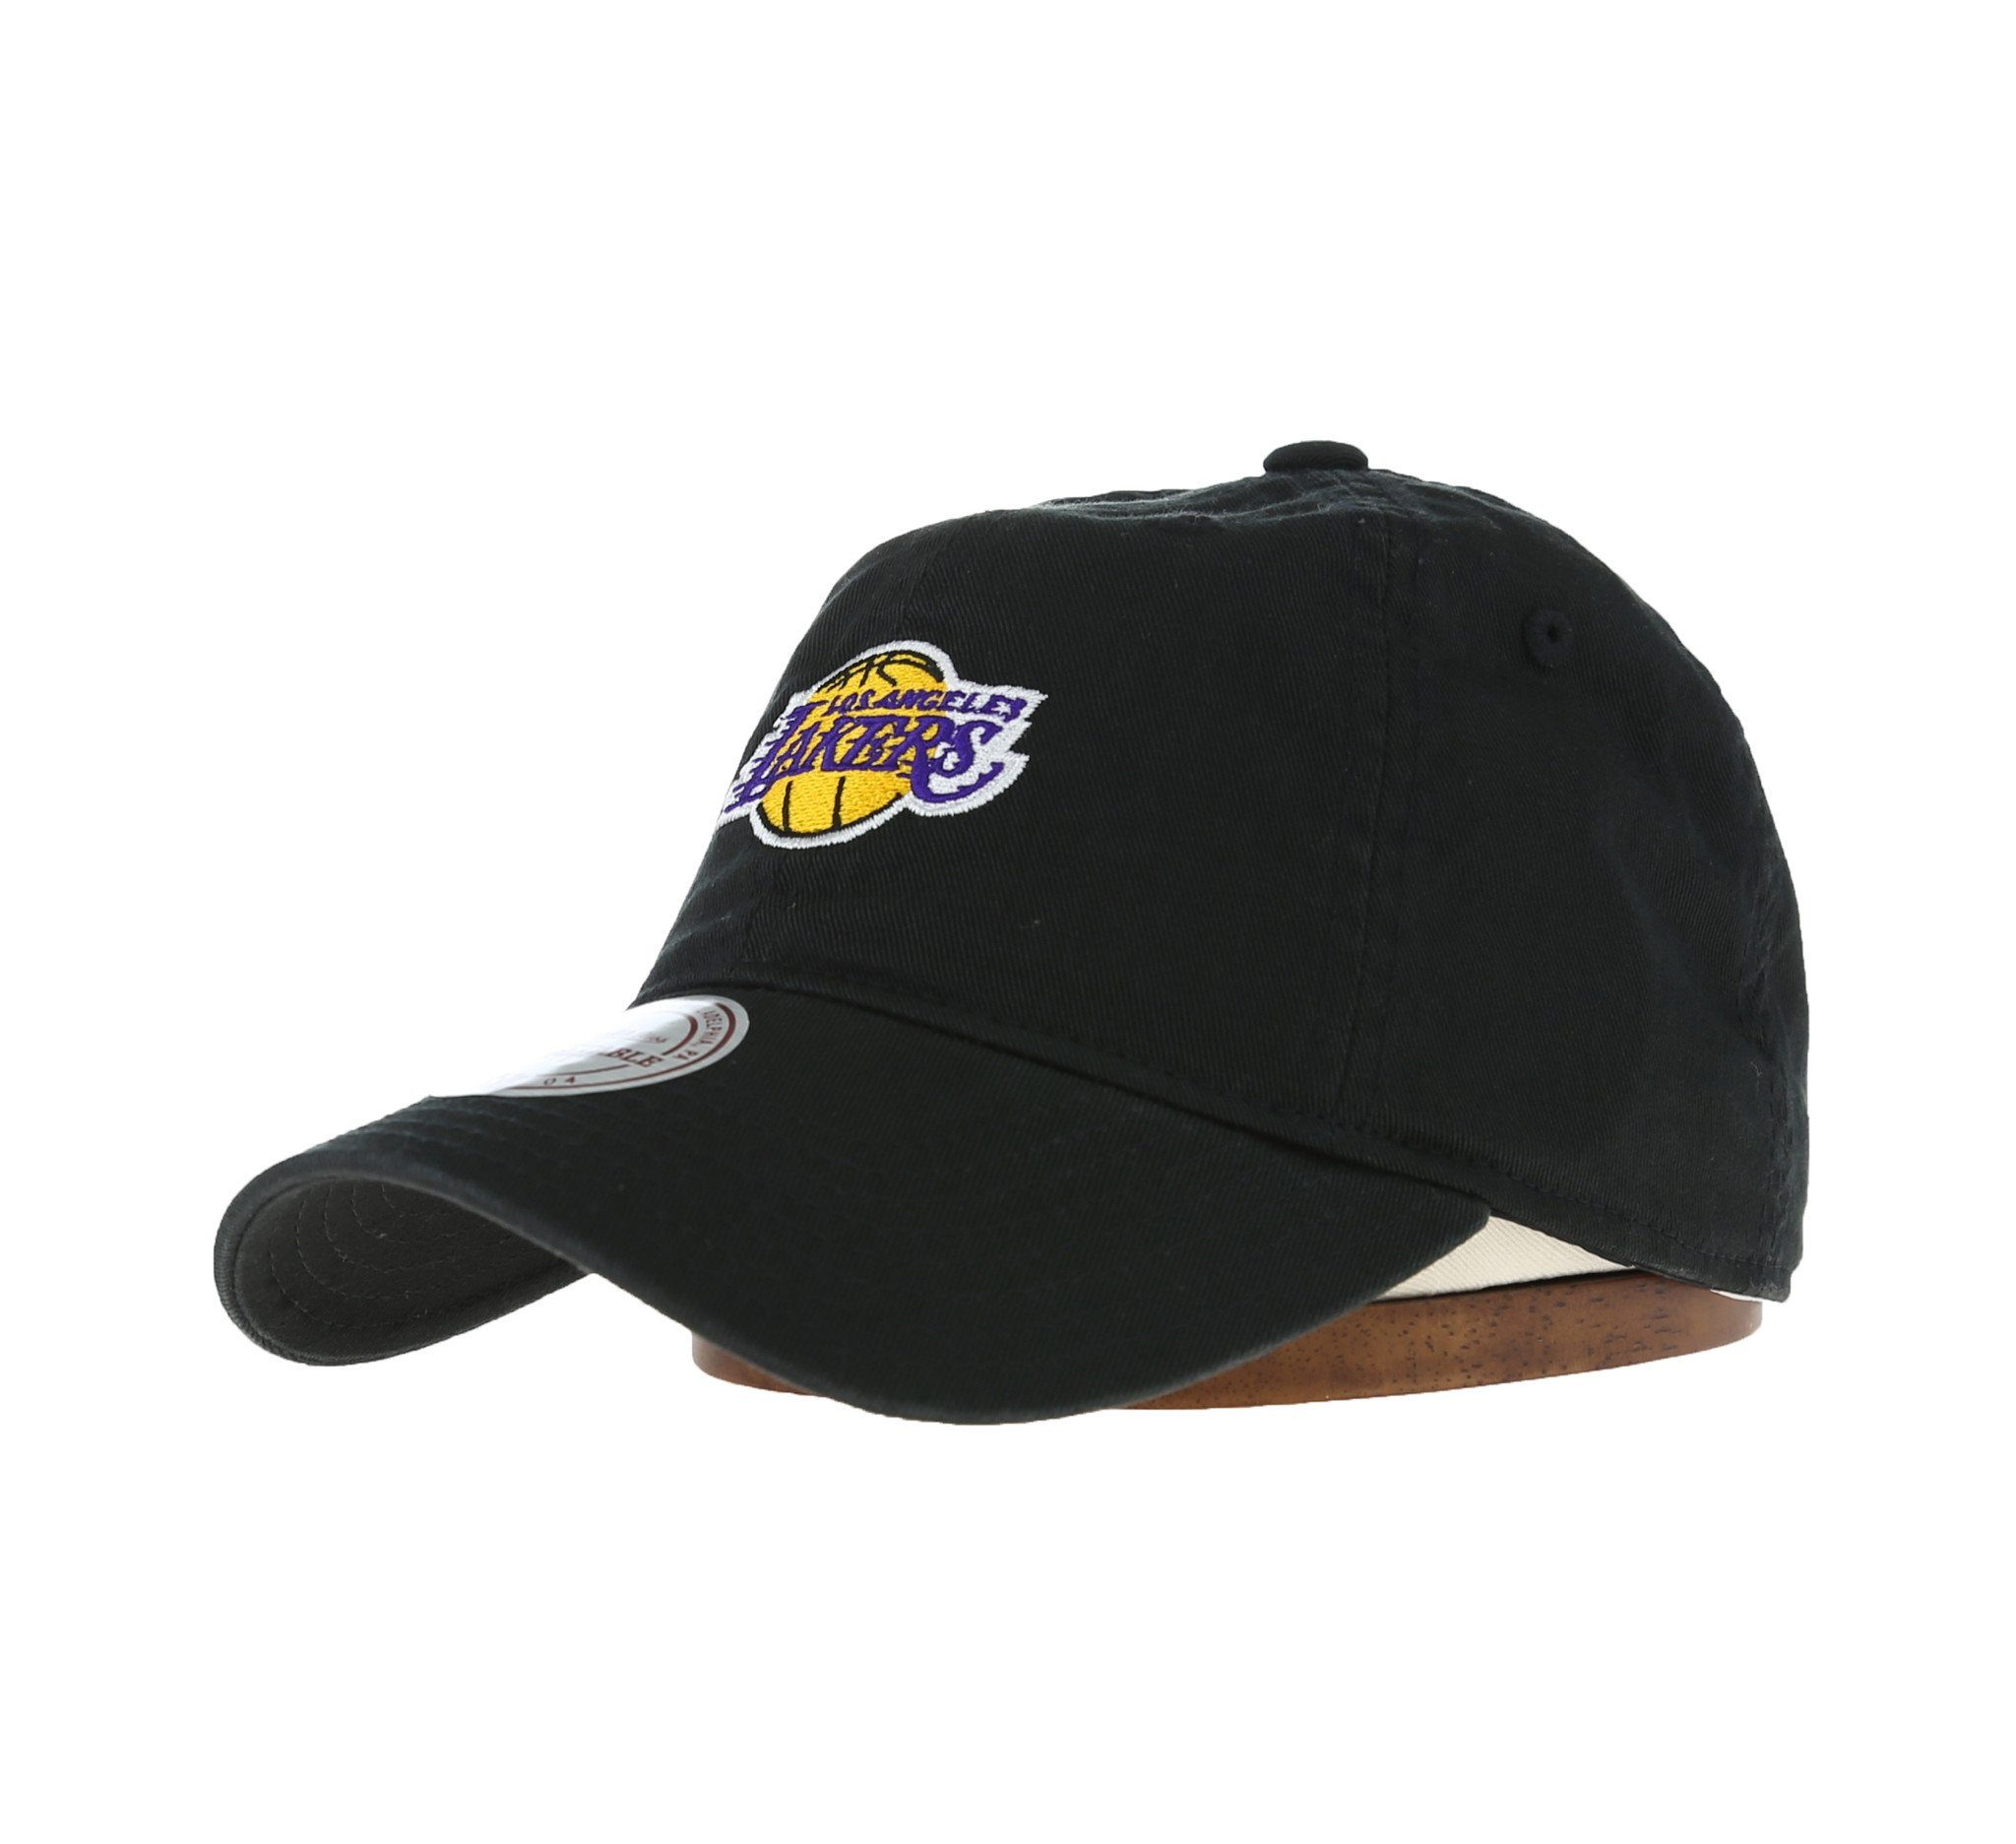 00e91a6f0d33 LOS ANGELES LAKERS DAD HAT